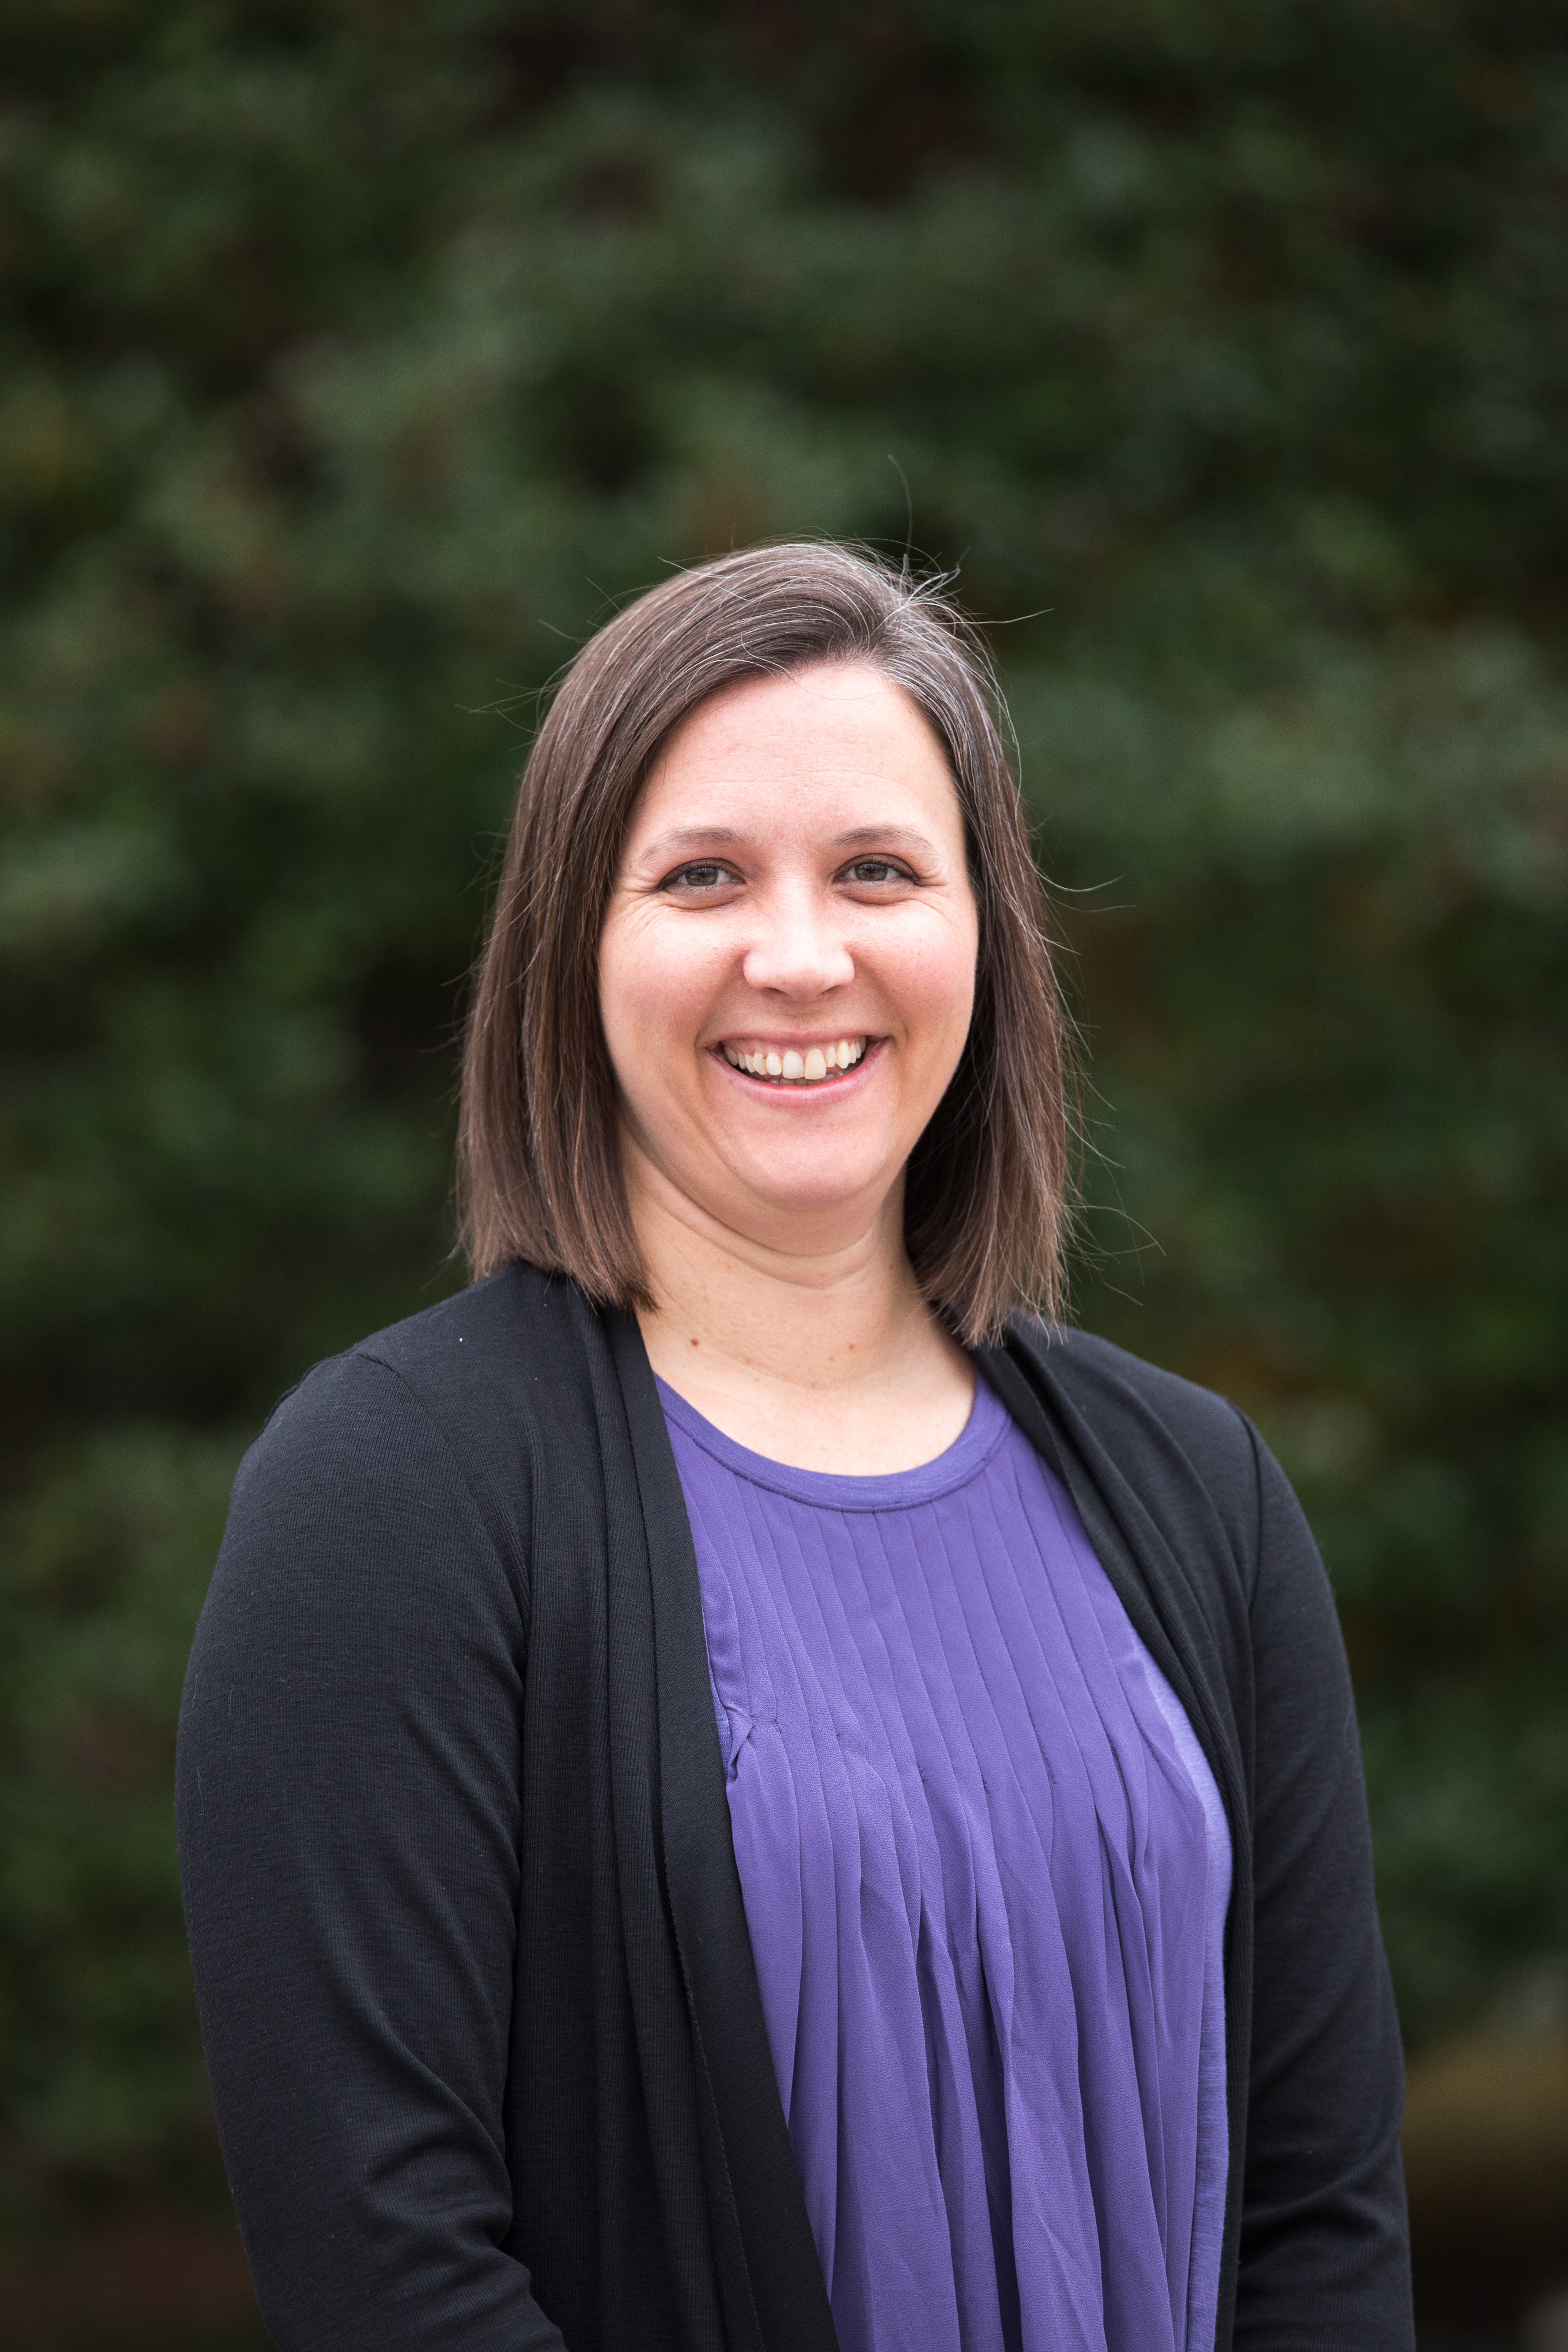 Feature Friday: Sarah Rowe, RN, Critical Care